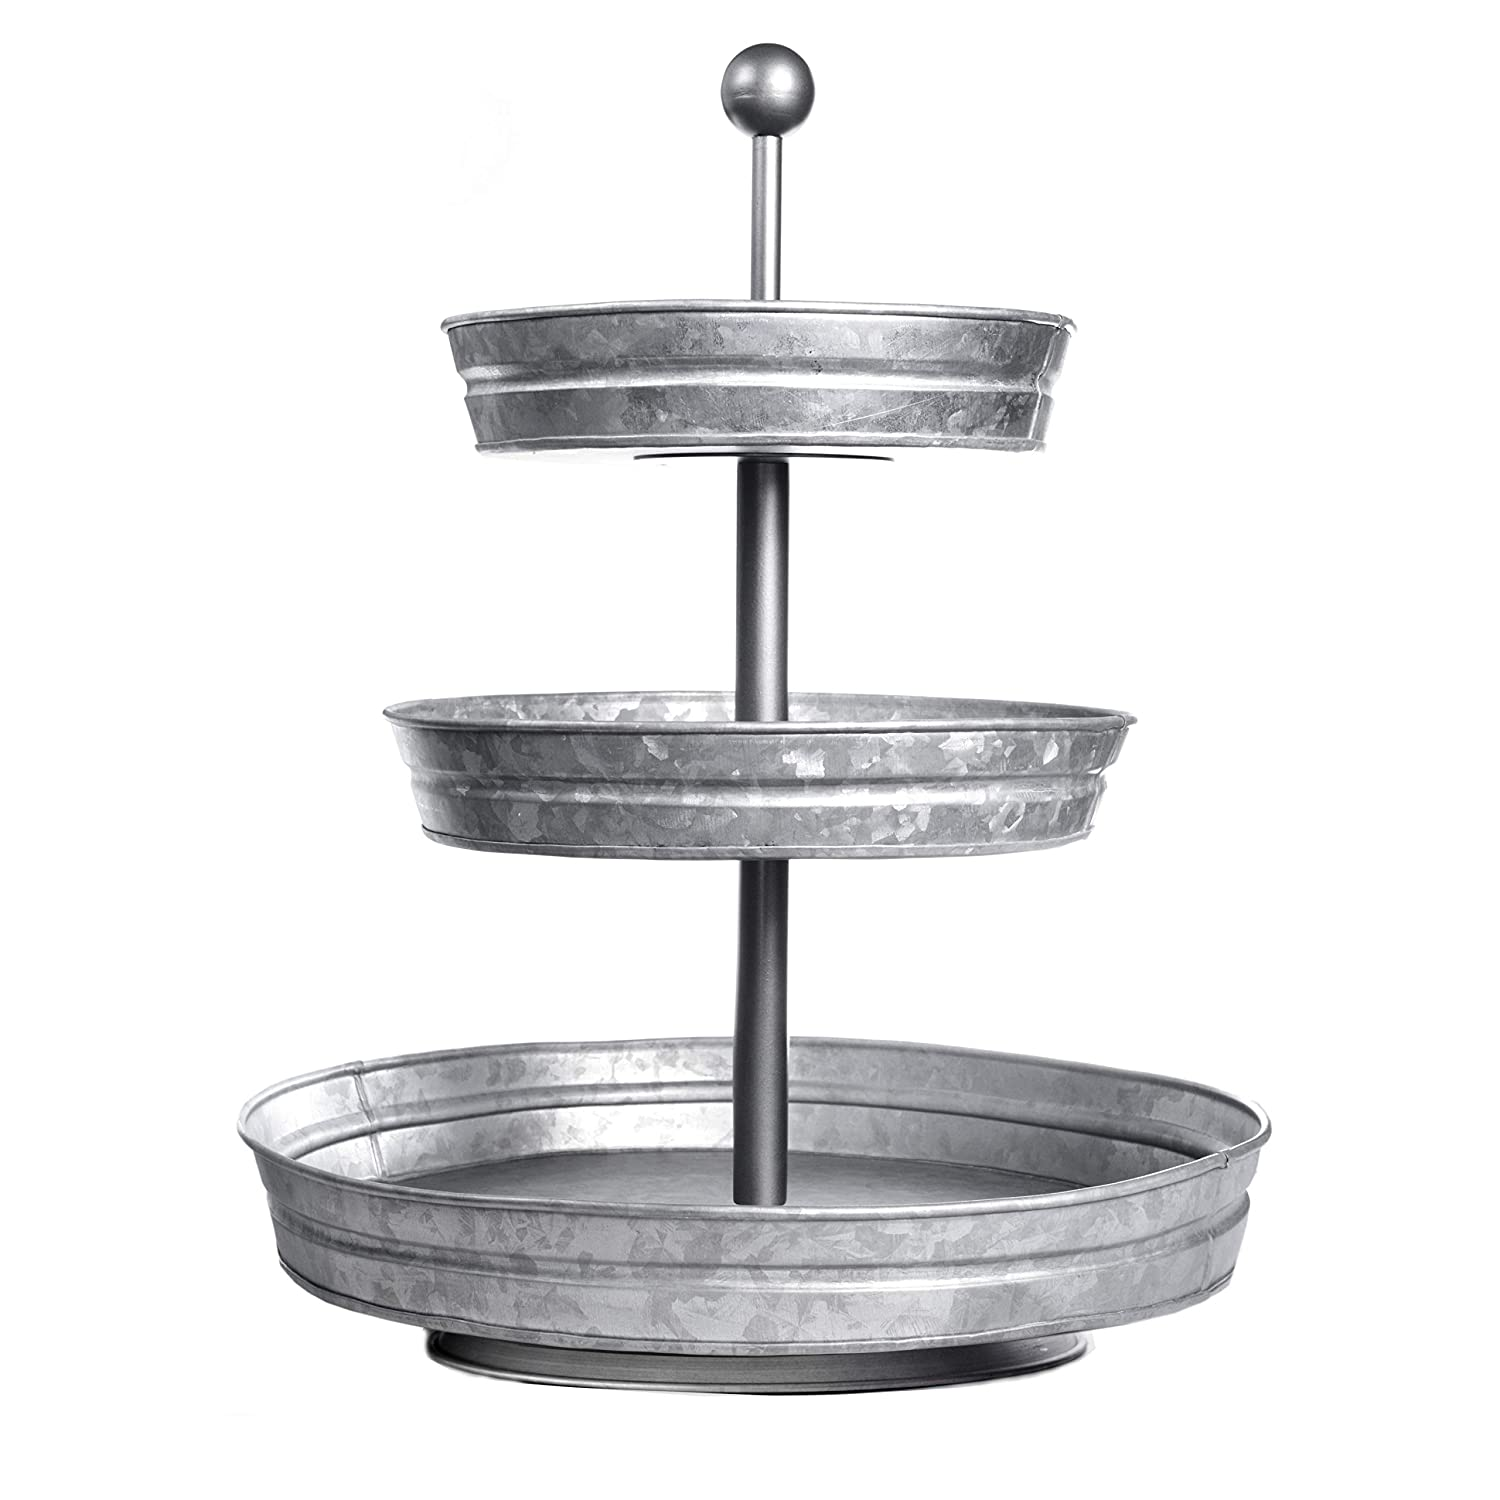 DELBRIO - 3-Tiered Serving Tray (Large) Rustic, Decorative Galvanized Metal | Home Farmhouse Décor & Display Stand | Coffee, Margarita Bar, Party Appetizers, Cupcake Stand | Indoor, Outdoor Use